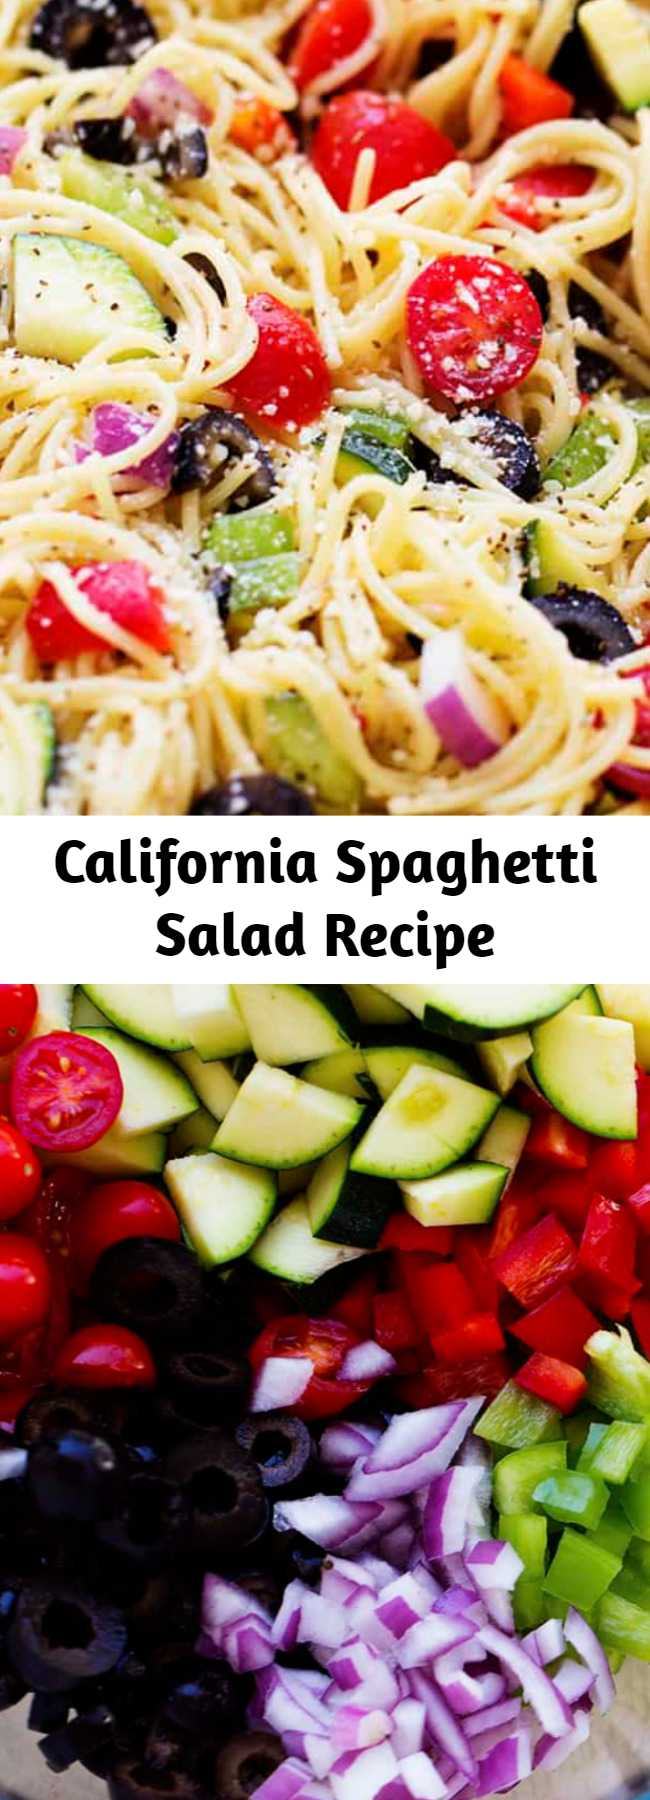 California Spaghetti Salad Recipe - A delicious spaghetti salad filled with fresh summer veggies and olives. Topped with a zesty italian dressing and parmesan cheese, this will be the hit of your next gathering!